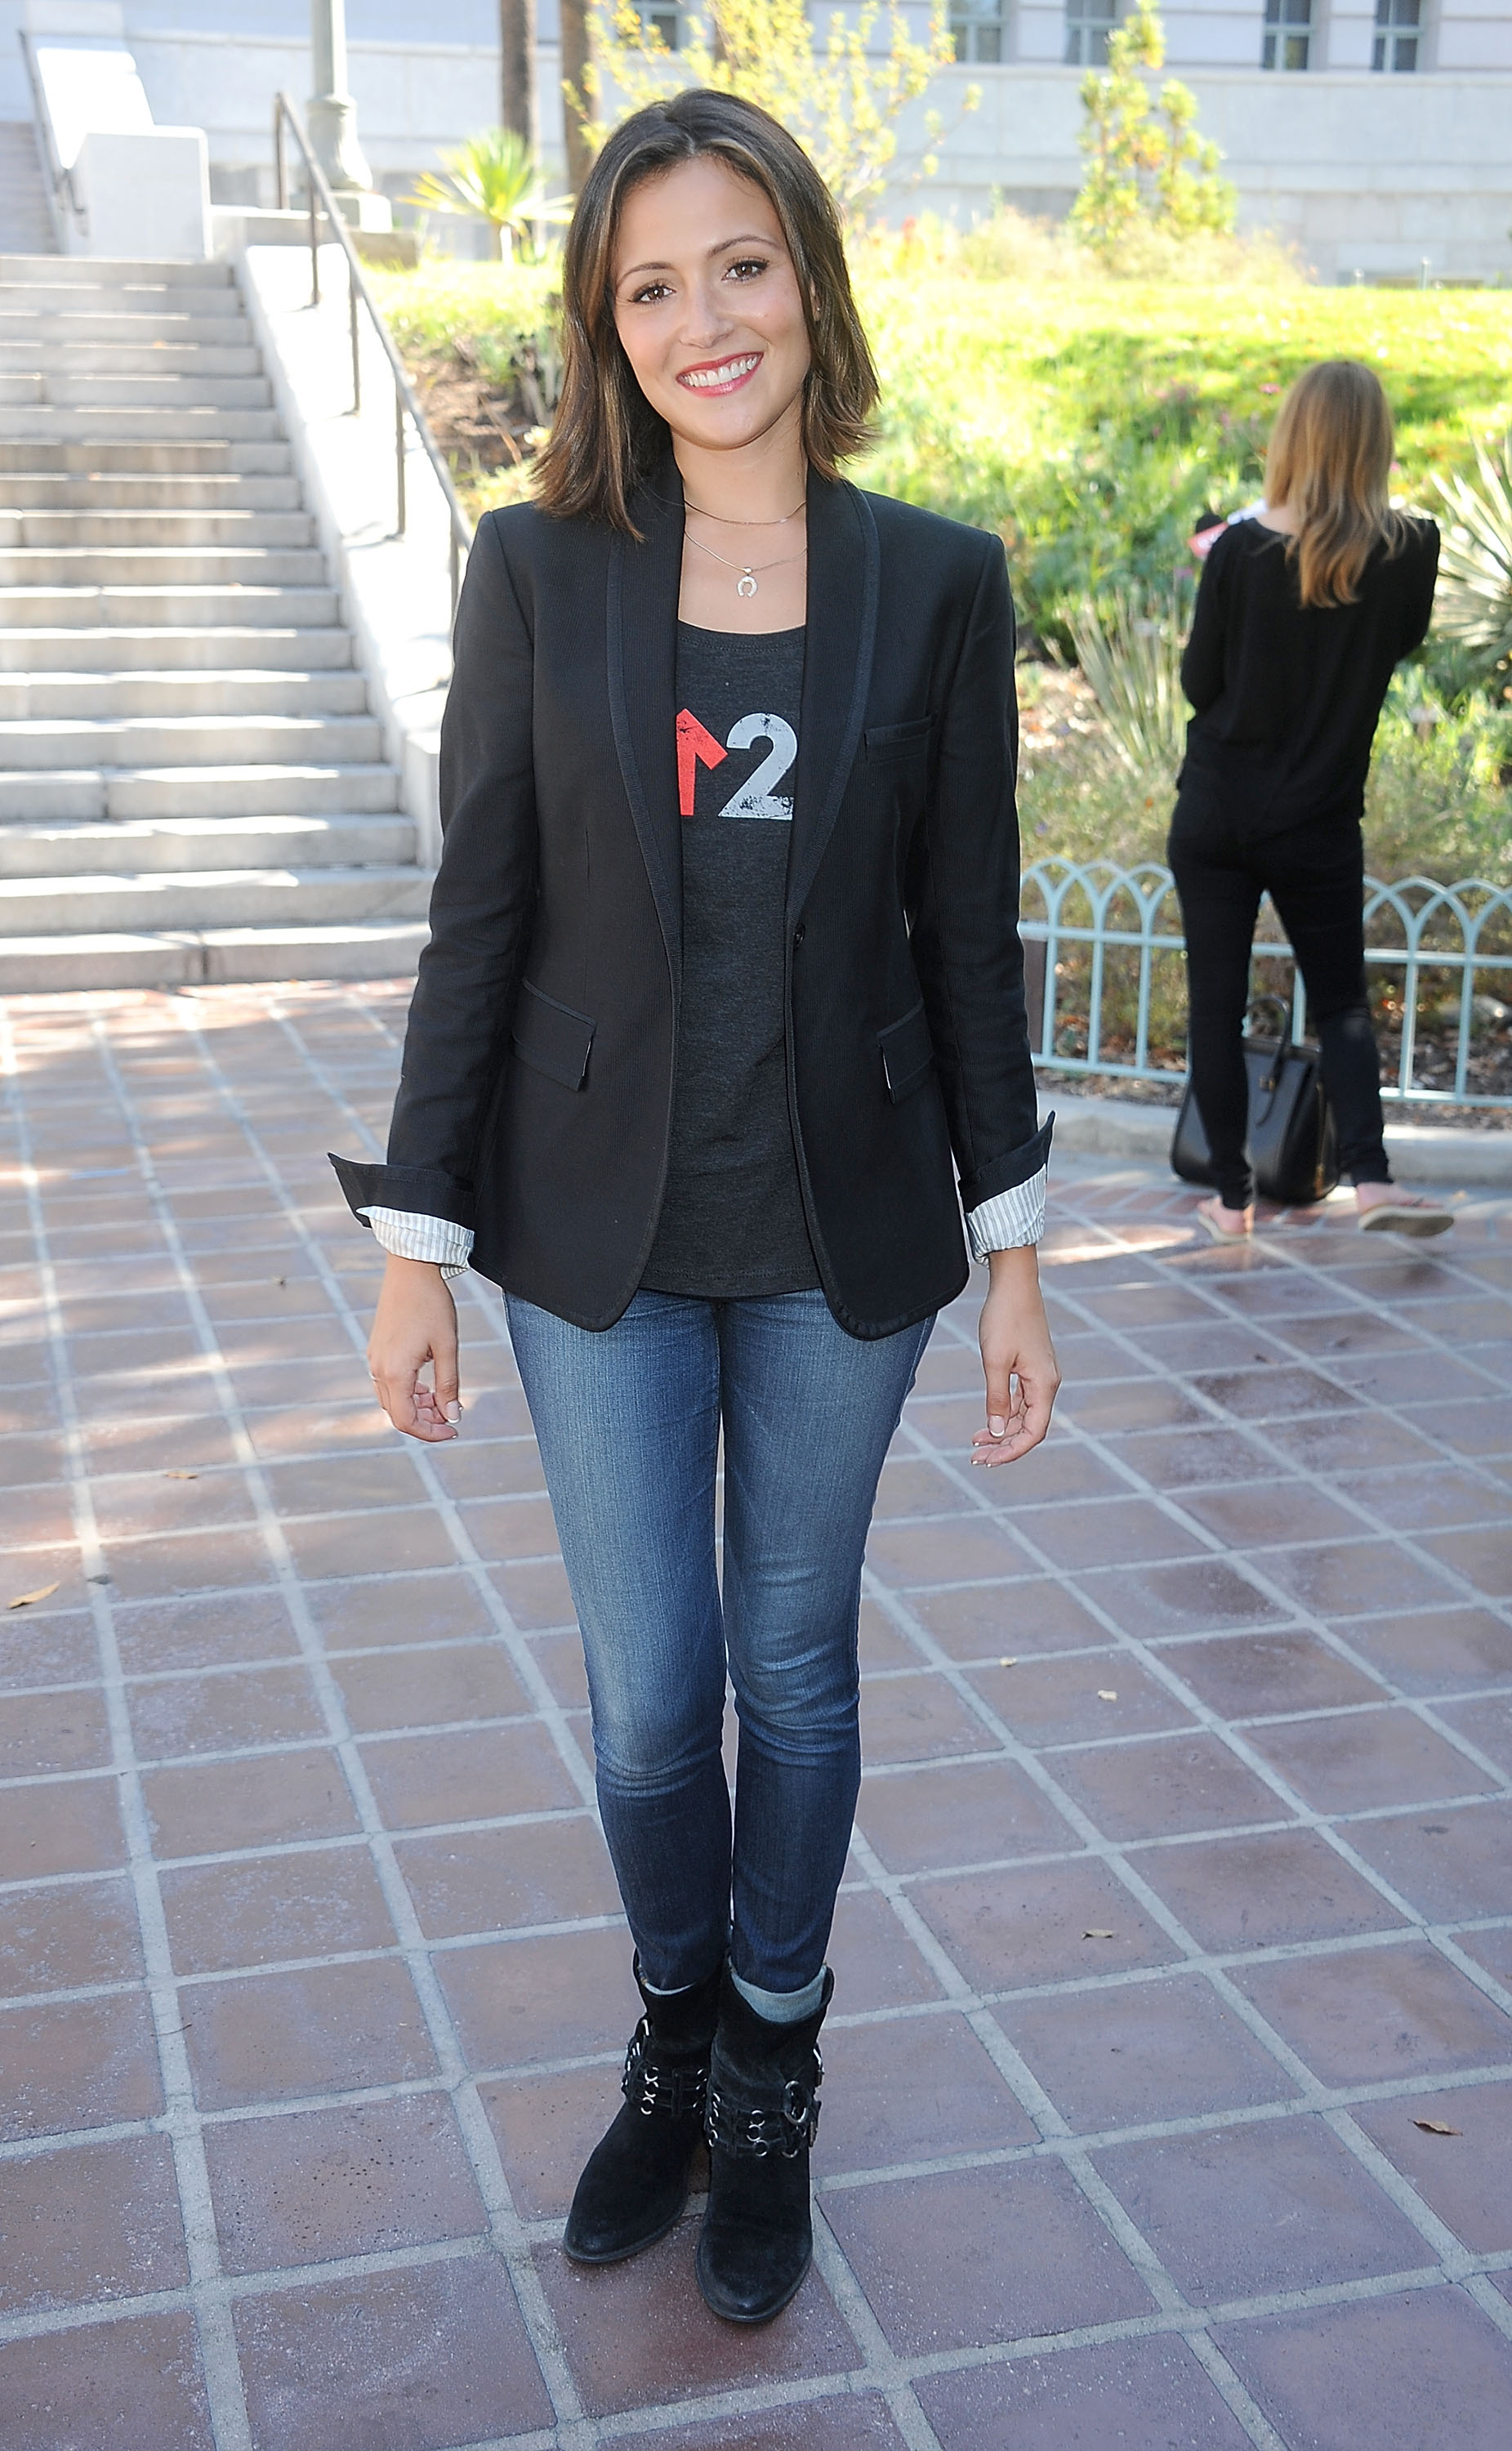 Italia Ricci Stand Up To Cancer Press Conference in Los Angeles